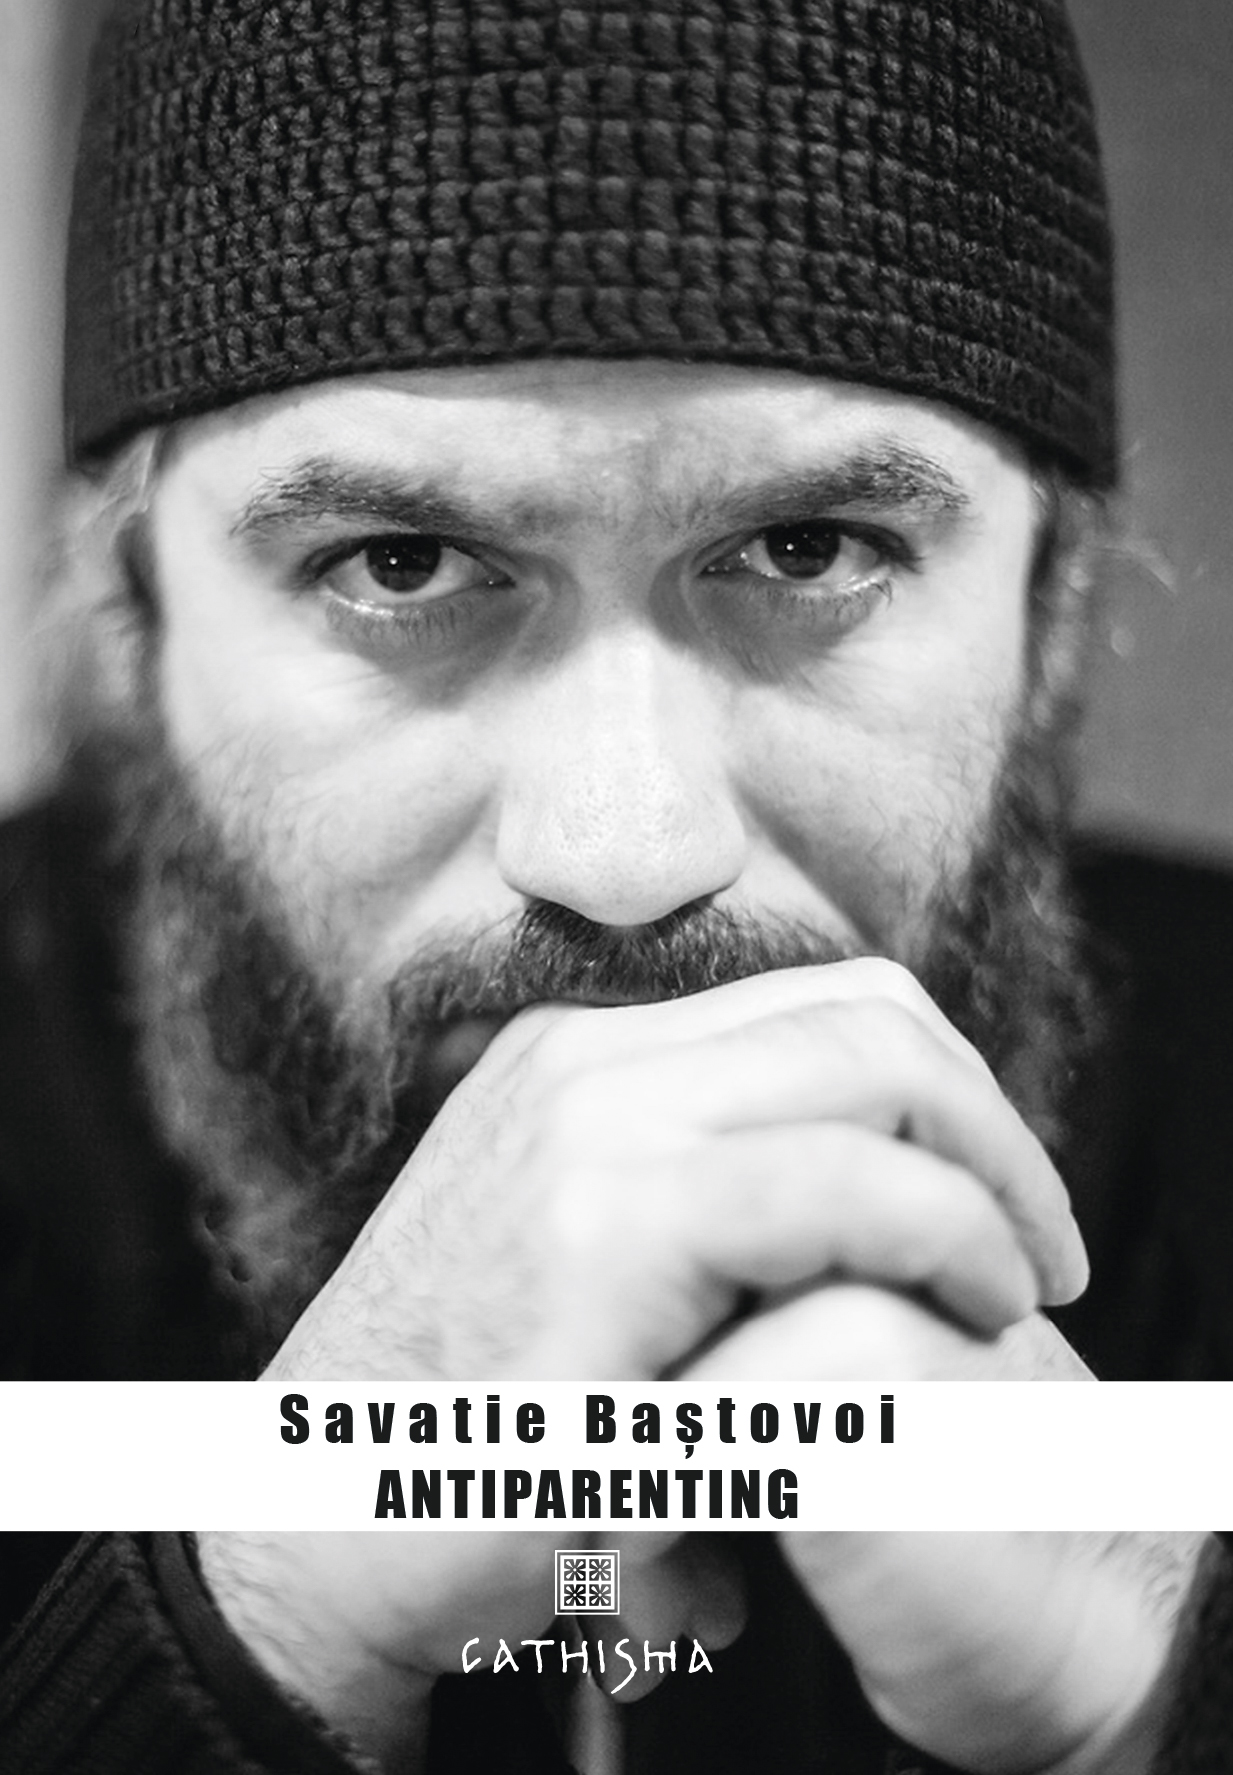 Antiparenting - Savatie Bastovoi thumbnail